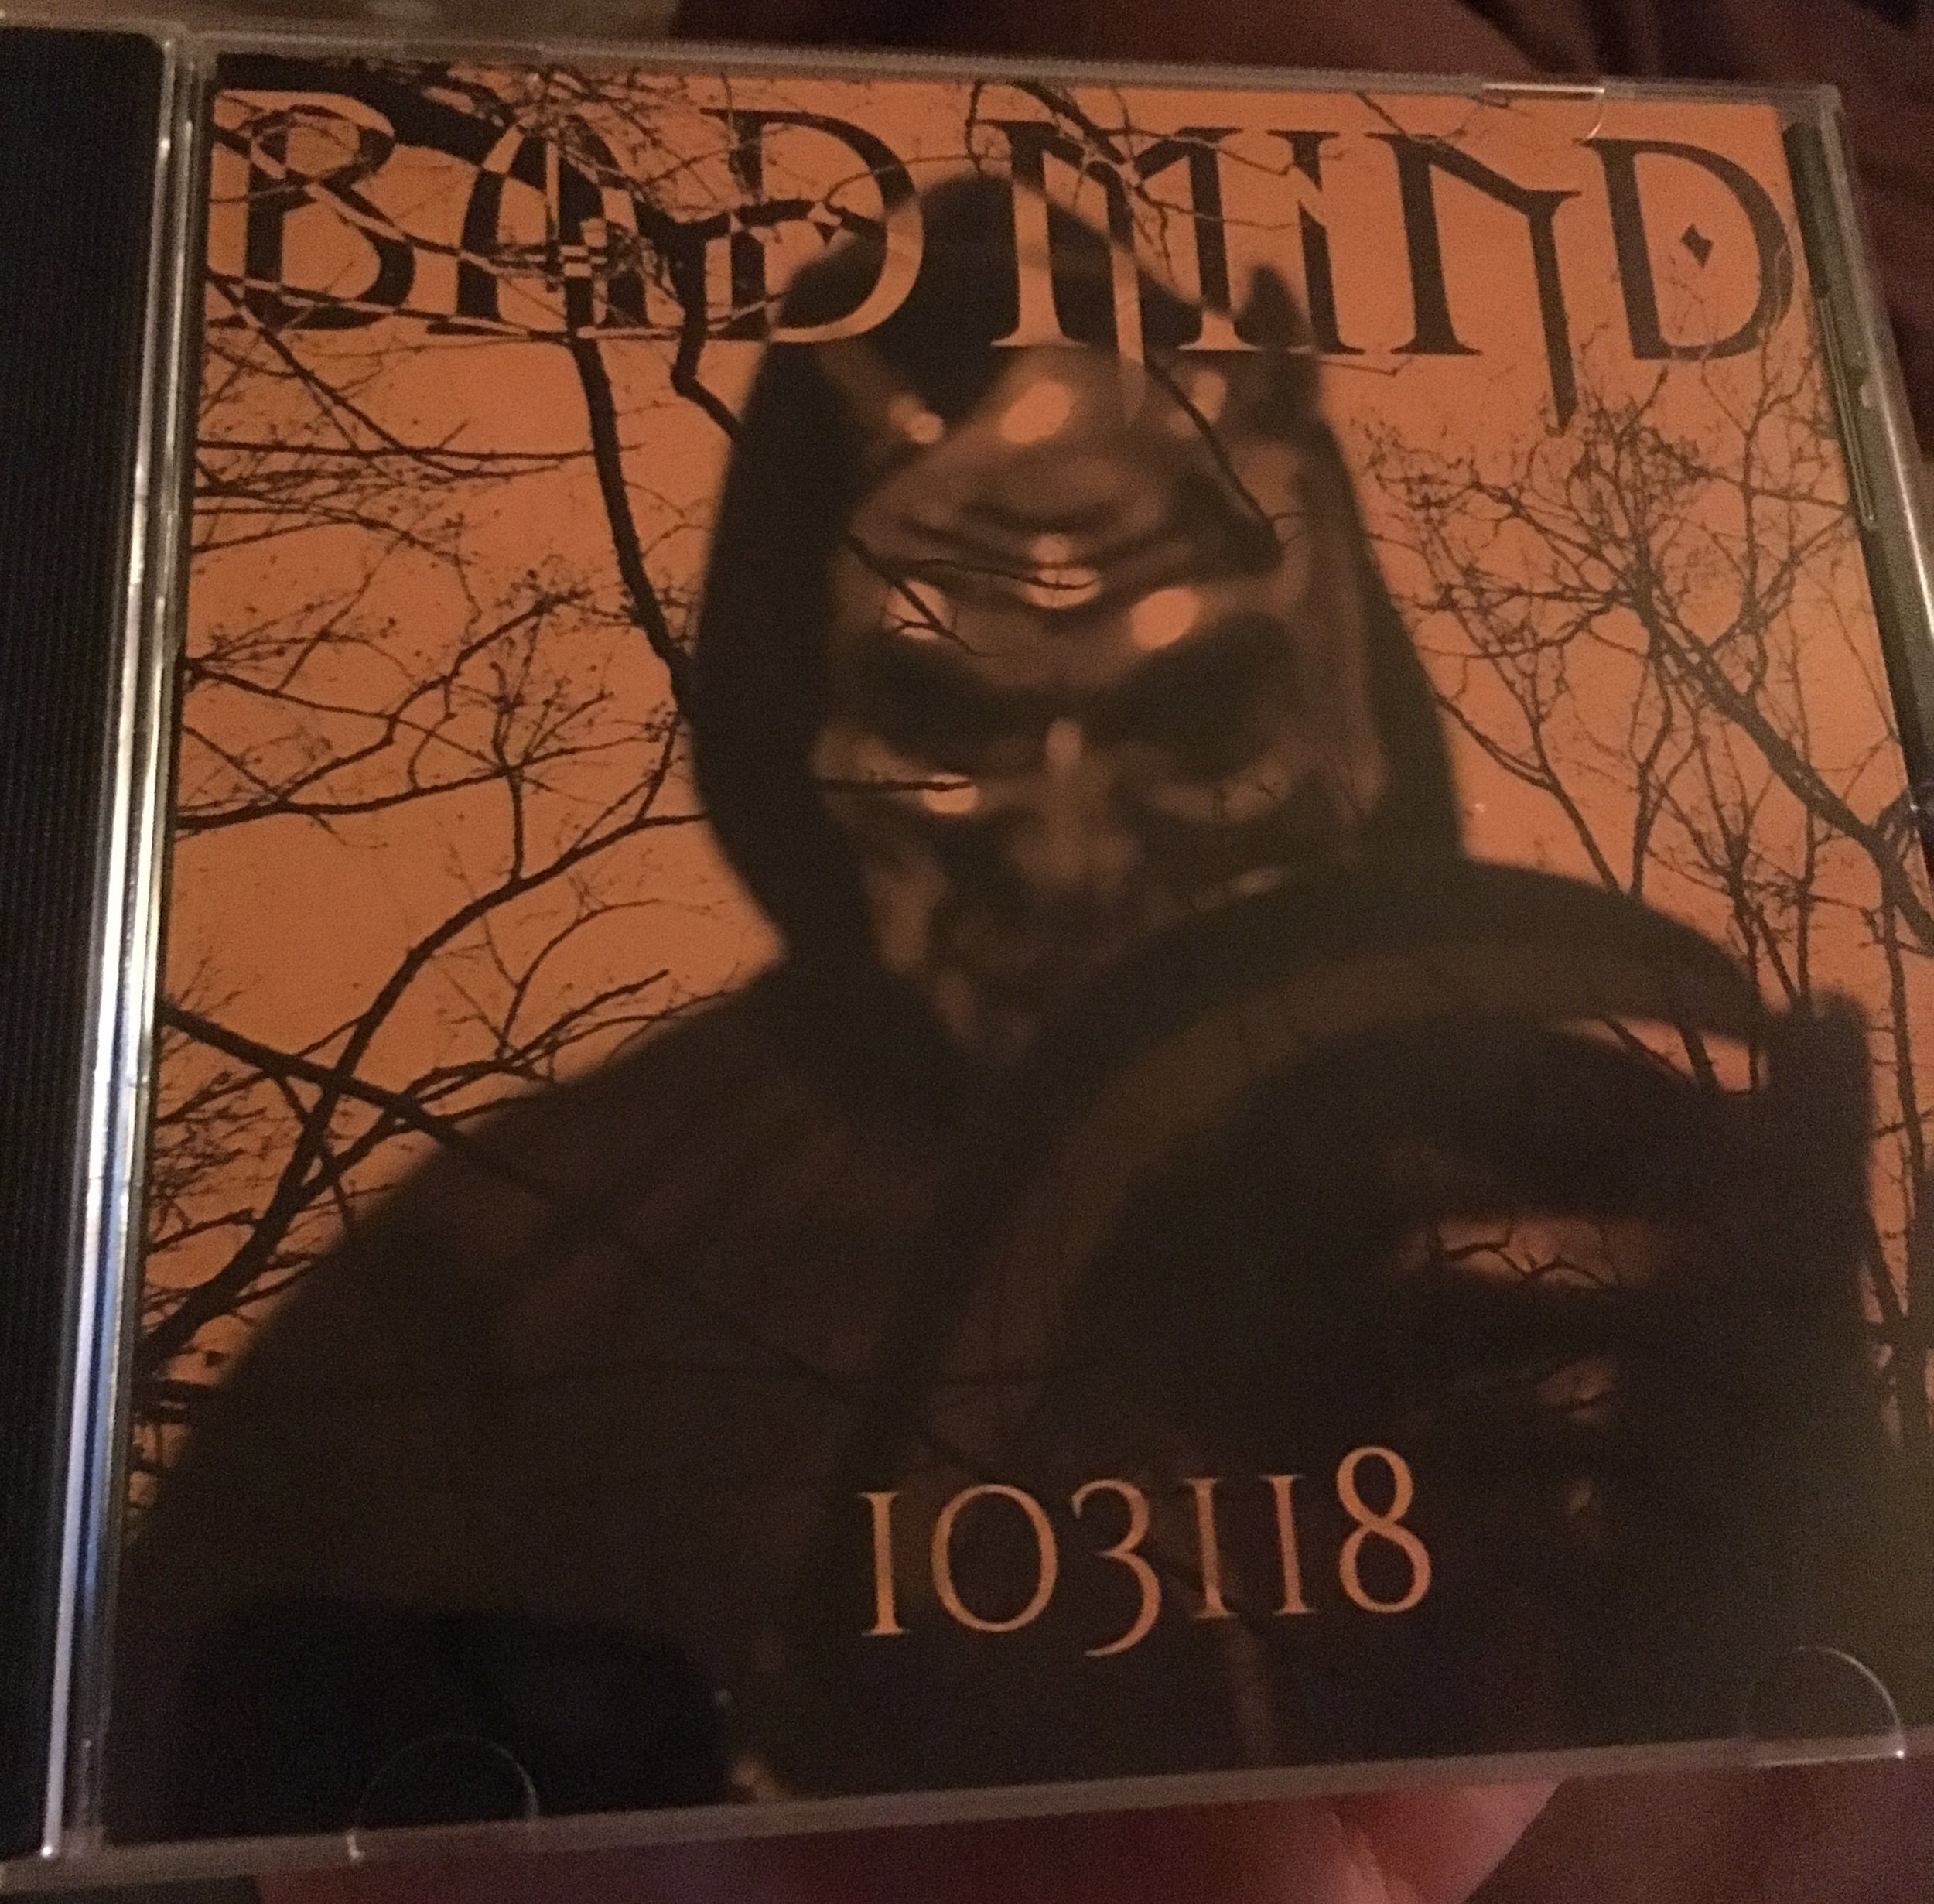 BAD MiND - 103118 on Compact Disc